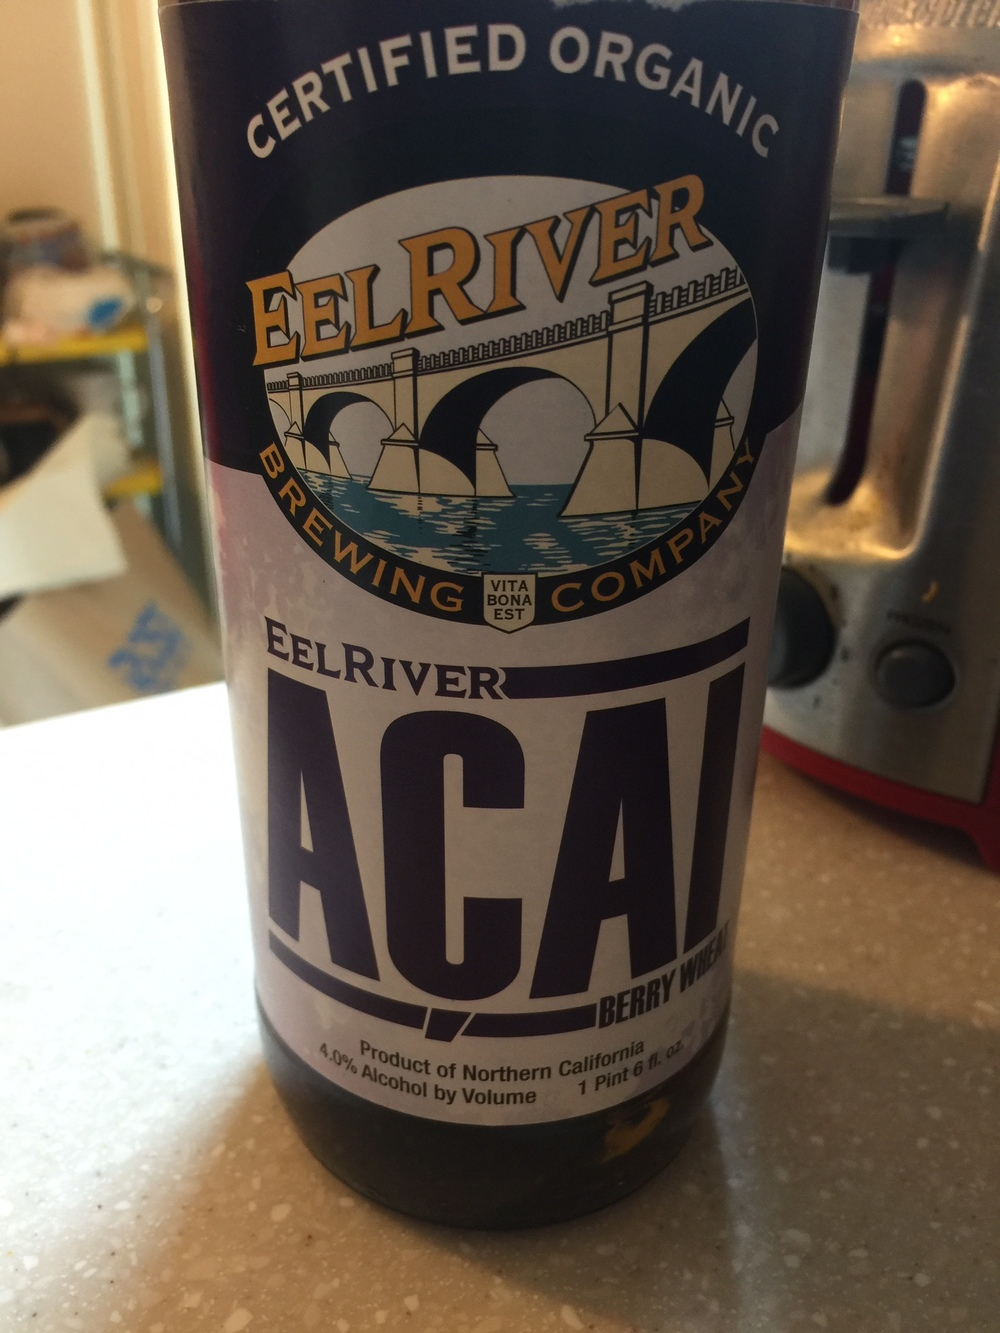 Eel River Acai Berry Wheat Ale